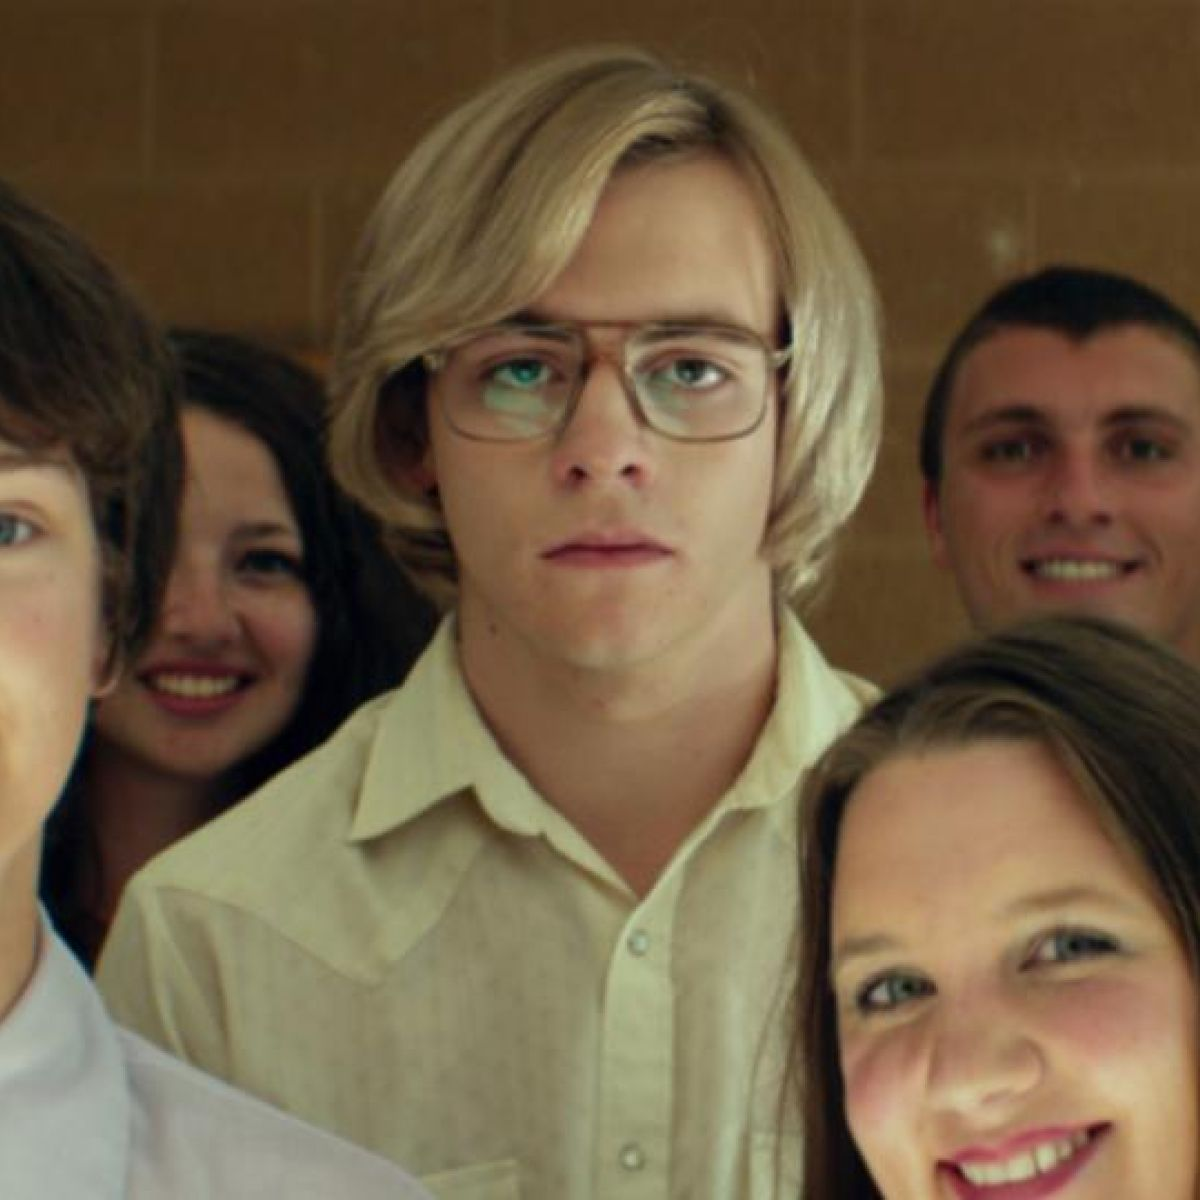 At school with a serial killer: growing up with Jeffrey Dahmer